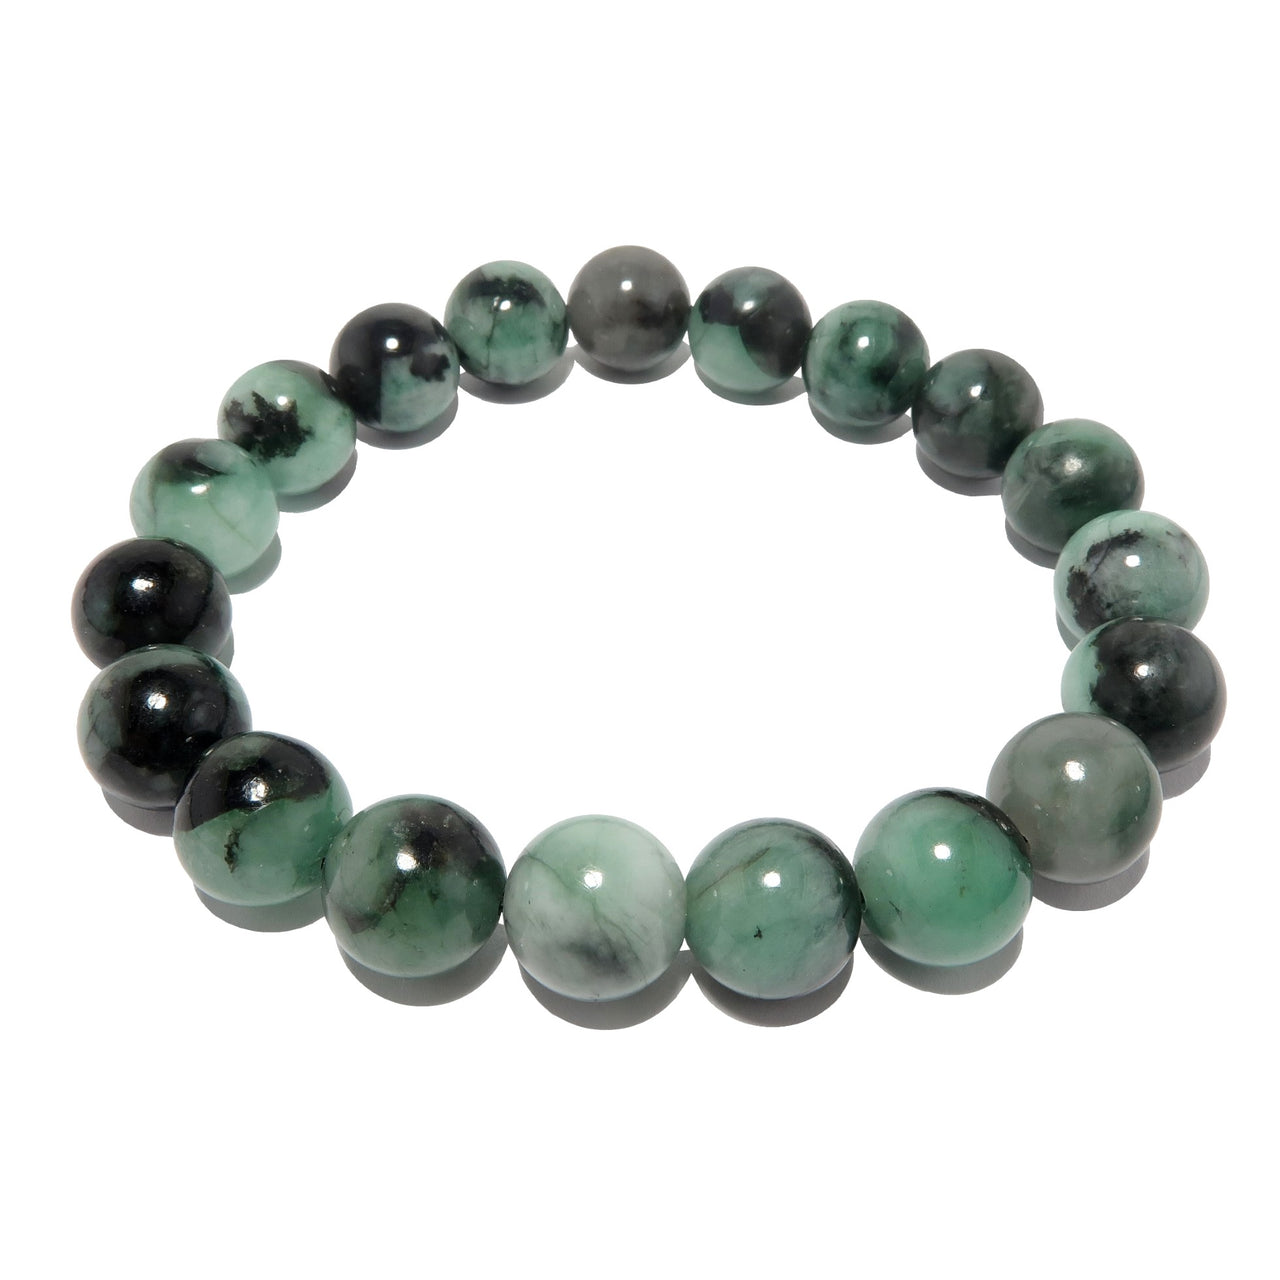 Emerald Bracelet 9mm Boutique Genuine Untreated Gemstone Green Black Round Stretch B01